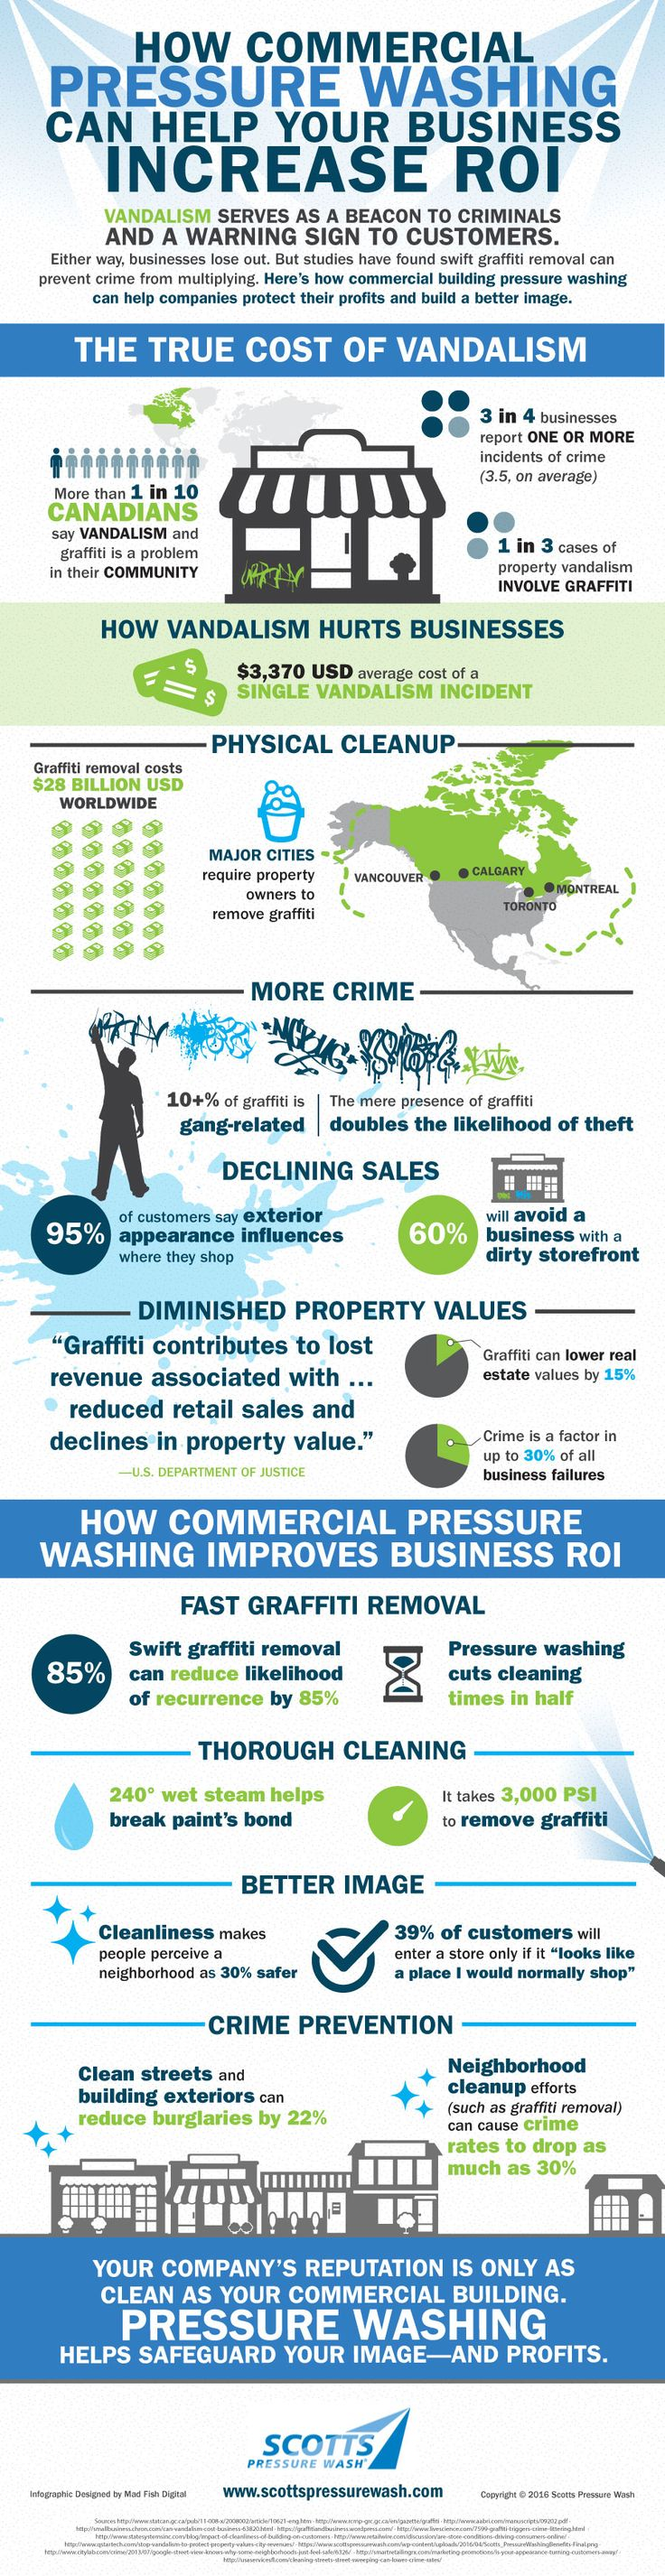 Lawn care advertising ideas - How Commercial Power Washing Can Help Your Business Increase Roi Http Egardeningtools